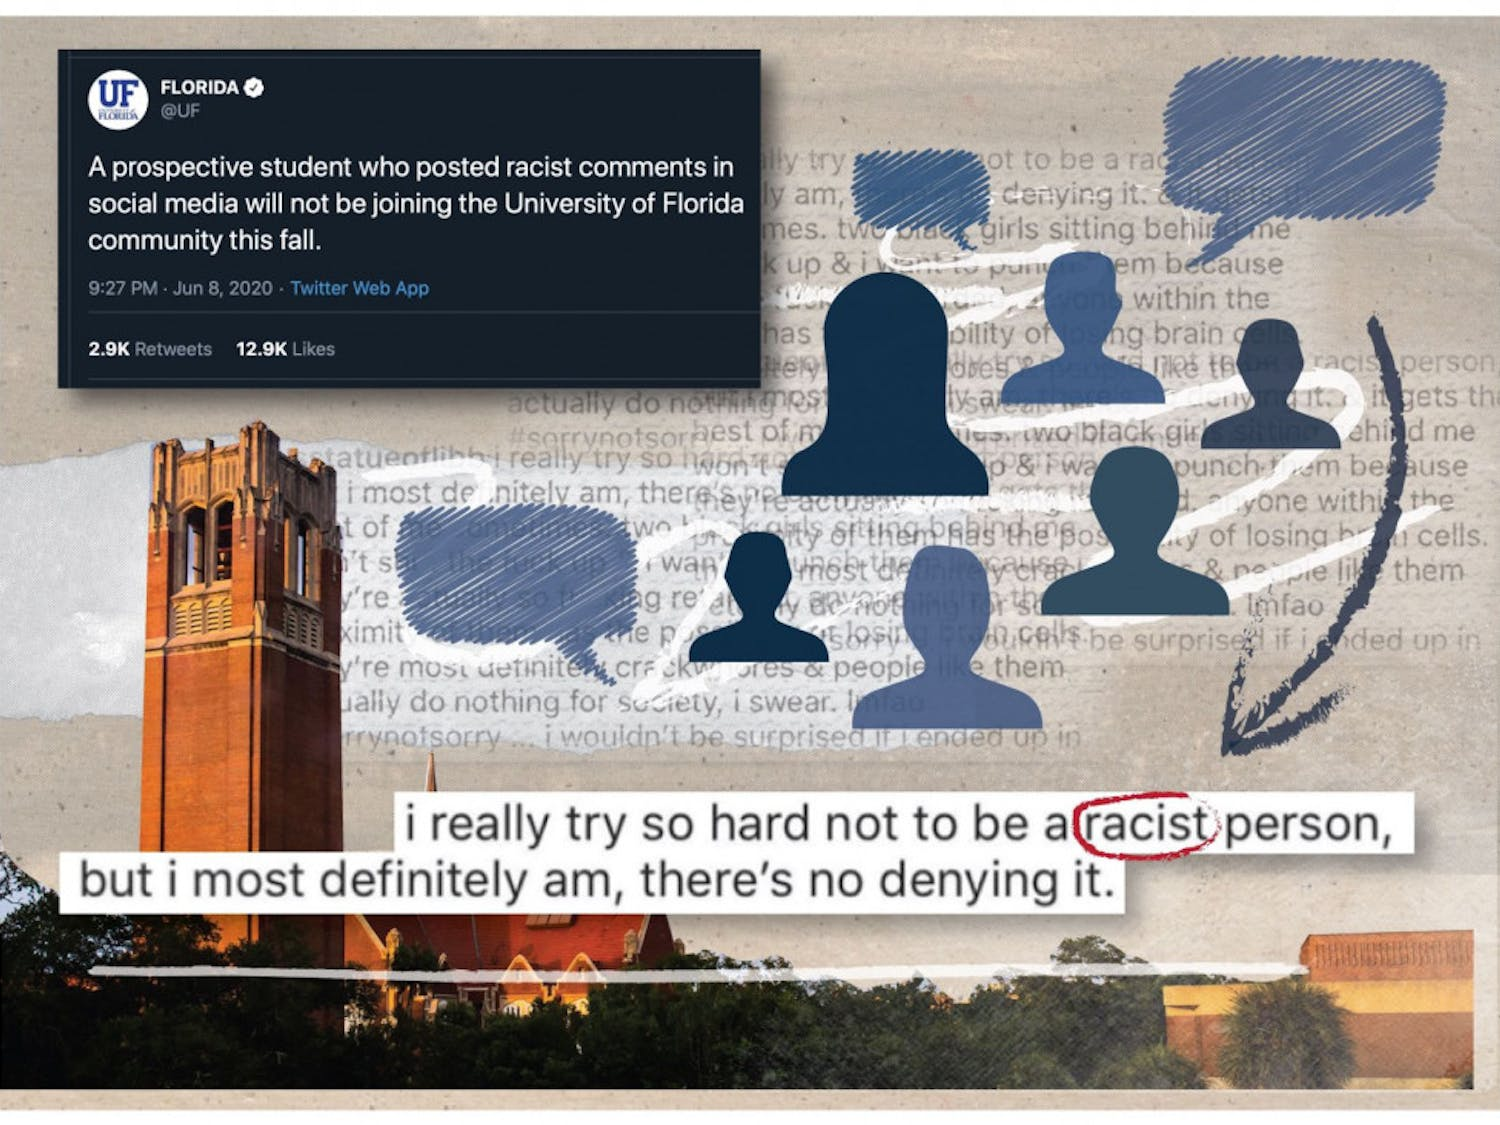 UF announced it was investigating racist comments made by a prospective UF student.